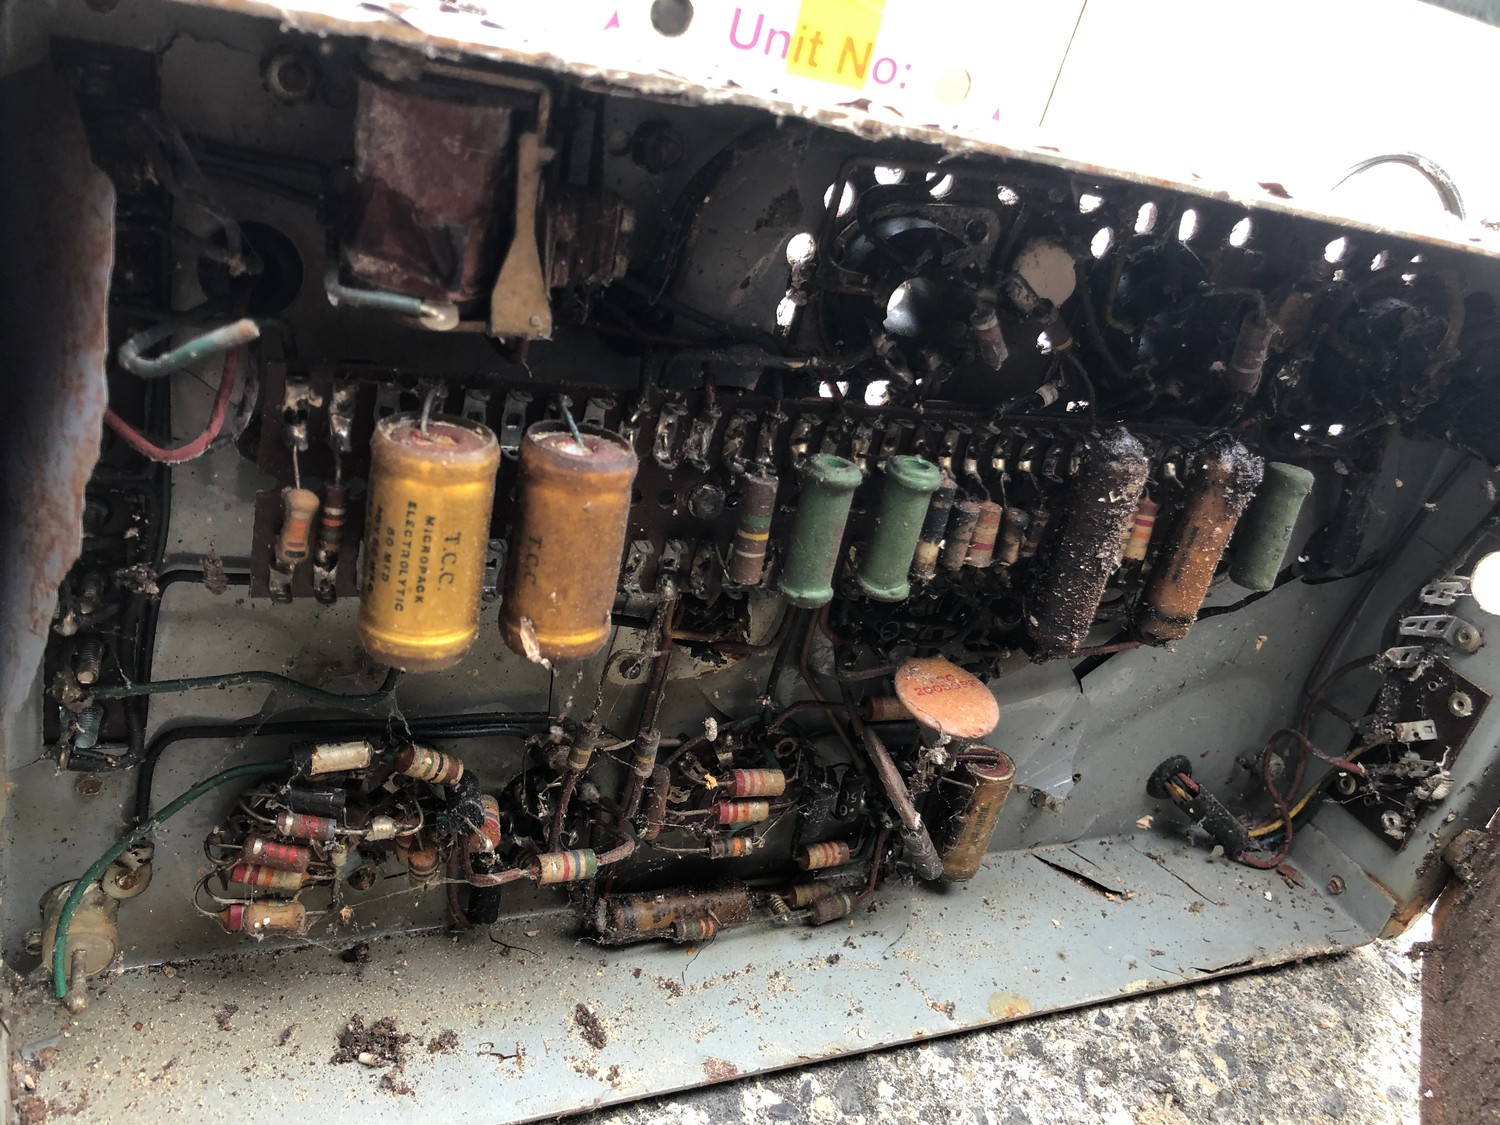 """Rare 1950s Bal-AMi 200 Jukebox in """"Barn Find"""" condition and in need of complete restoration, - Image 26 of 27"""